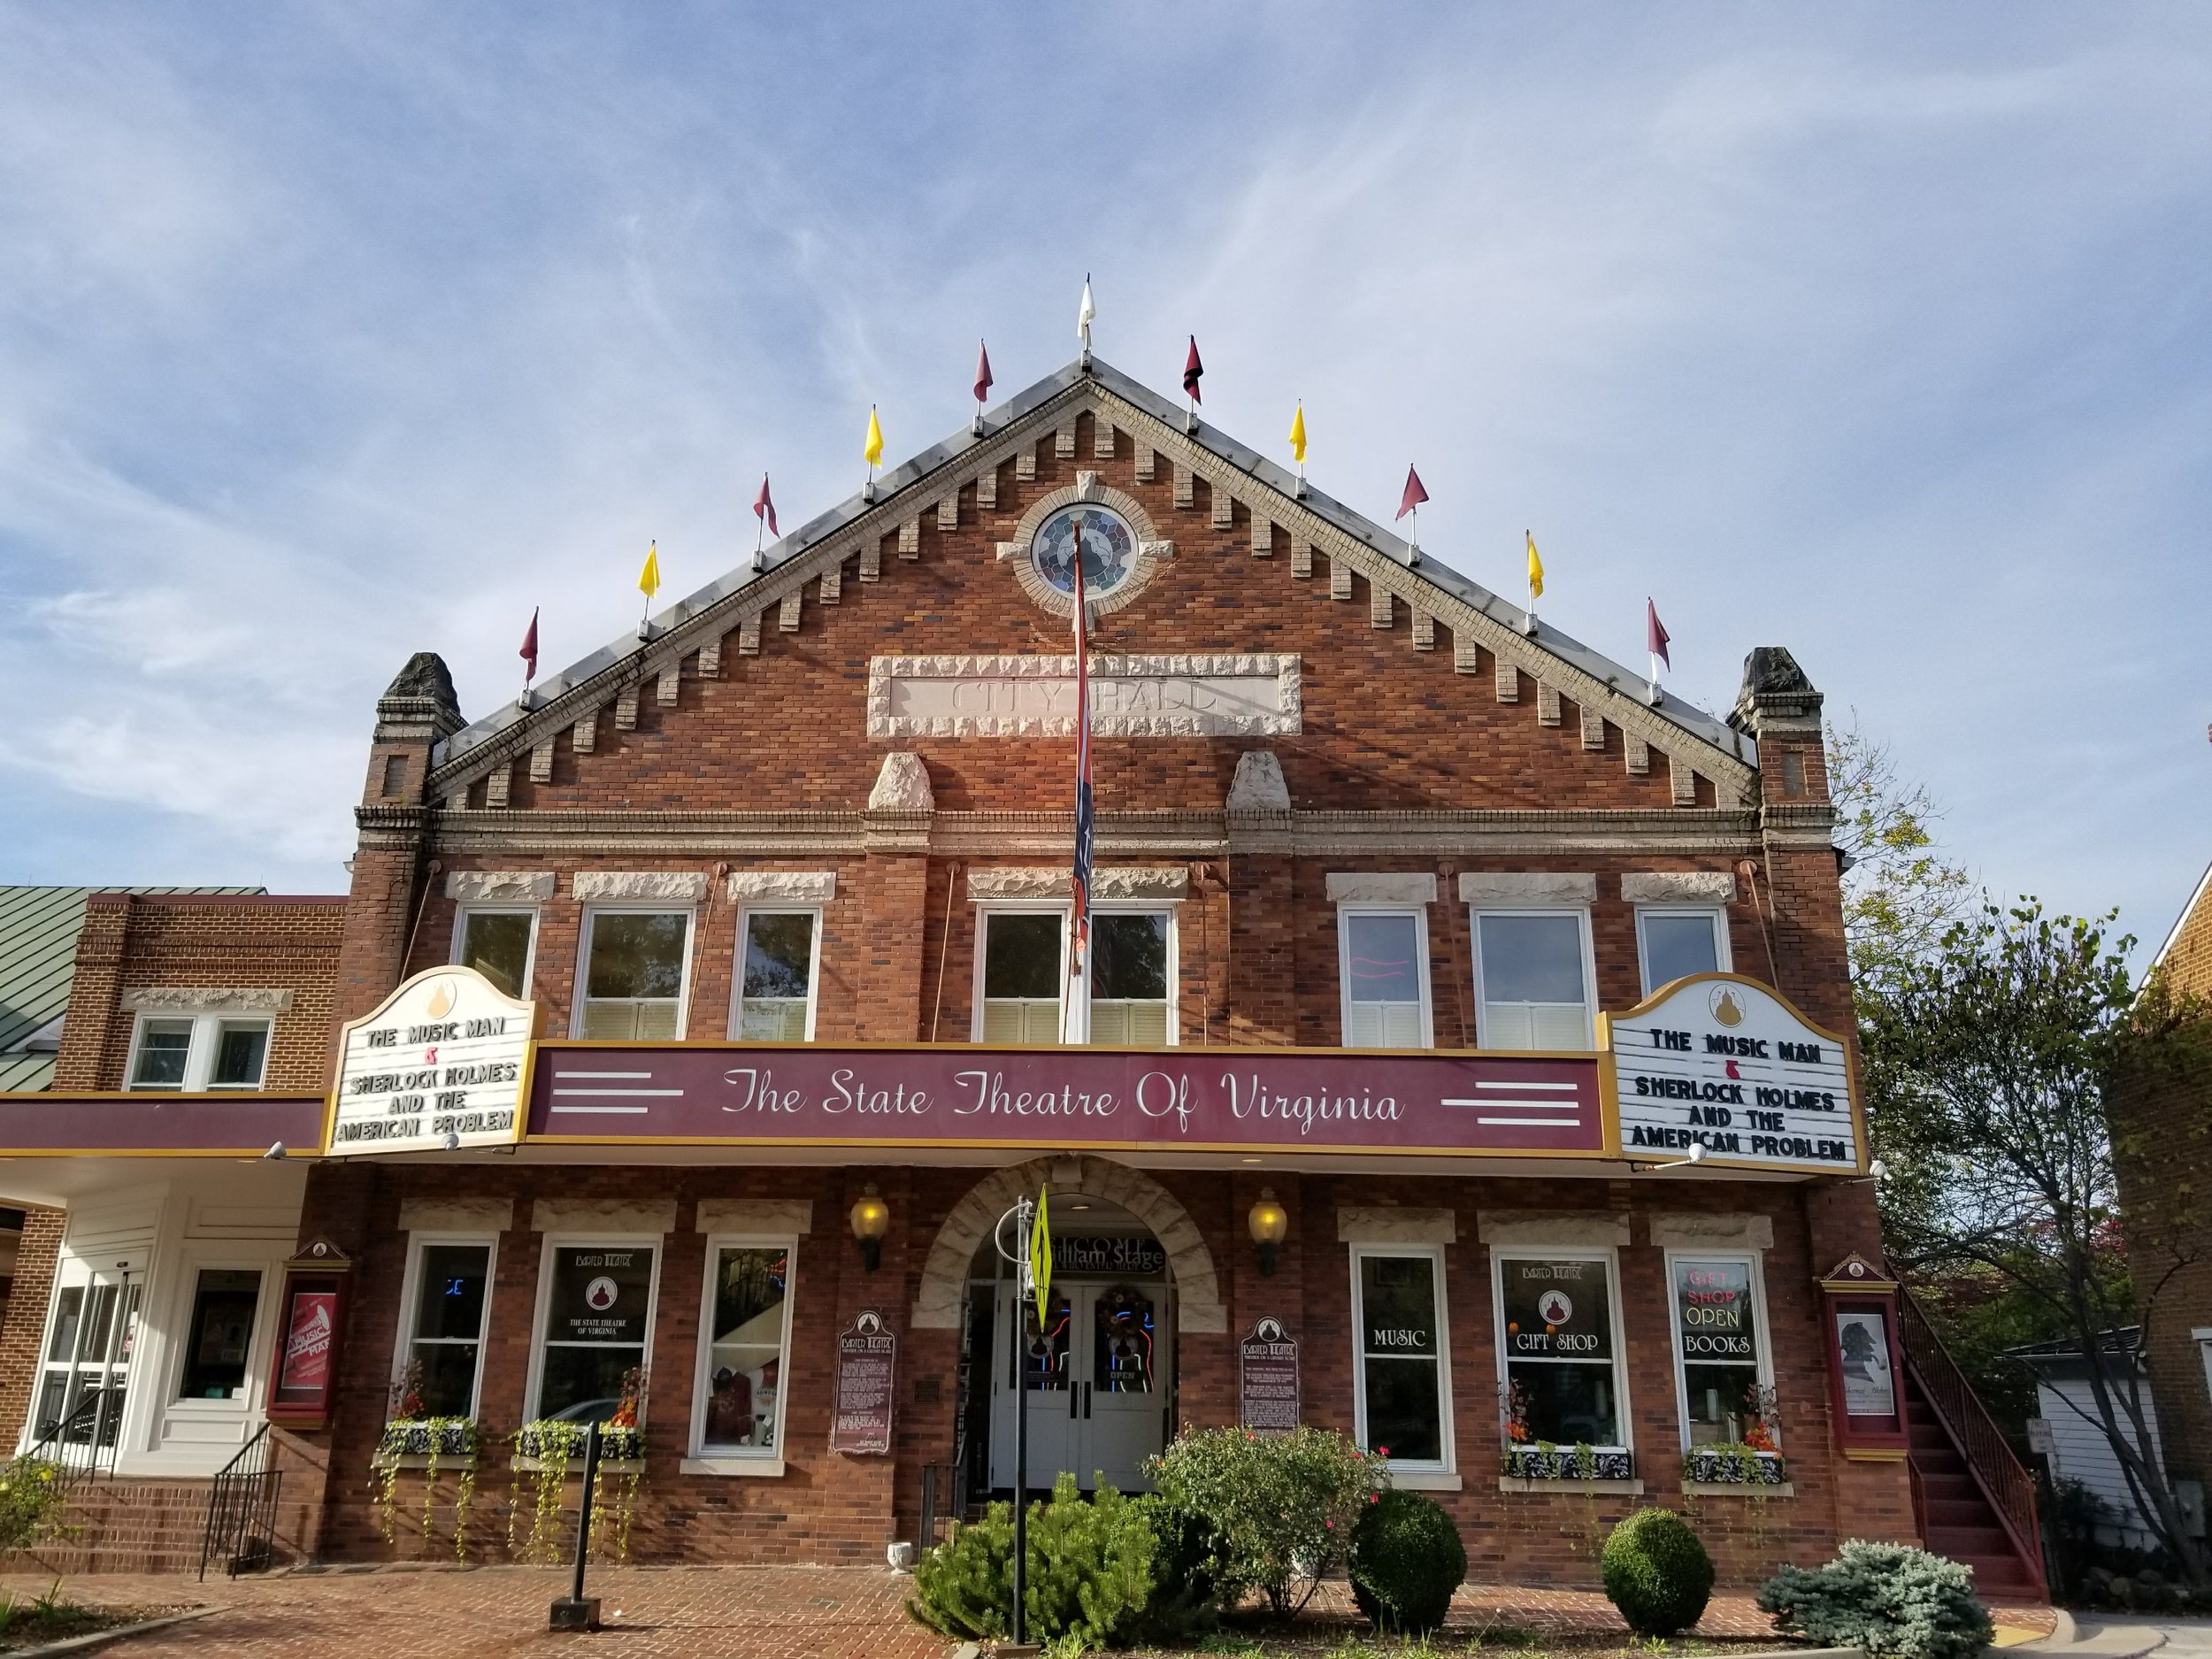 The Barter Theater is the state theater of Virginia. It is the longest running professional theater in the country.